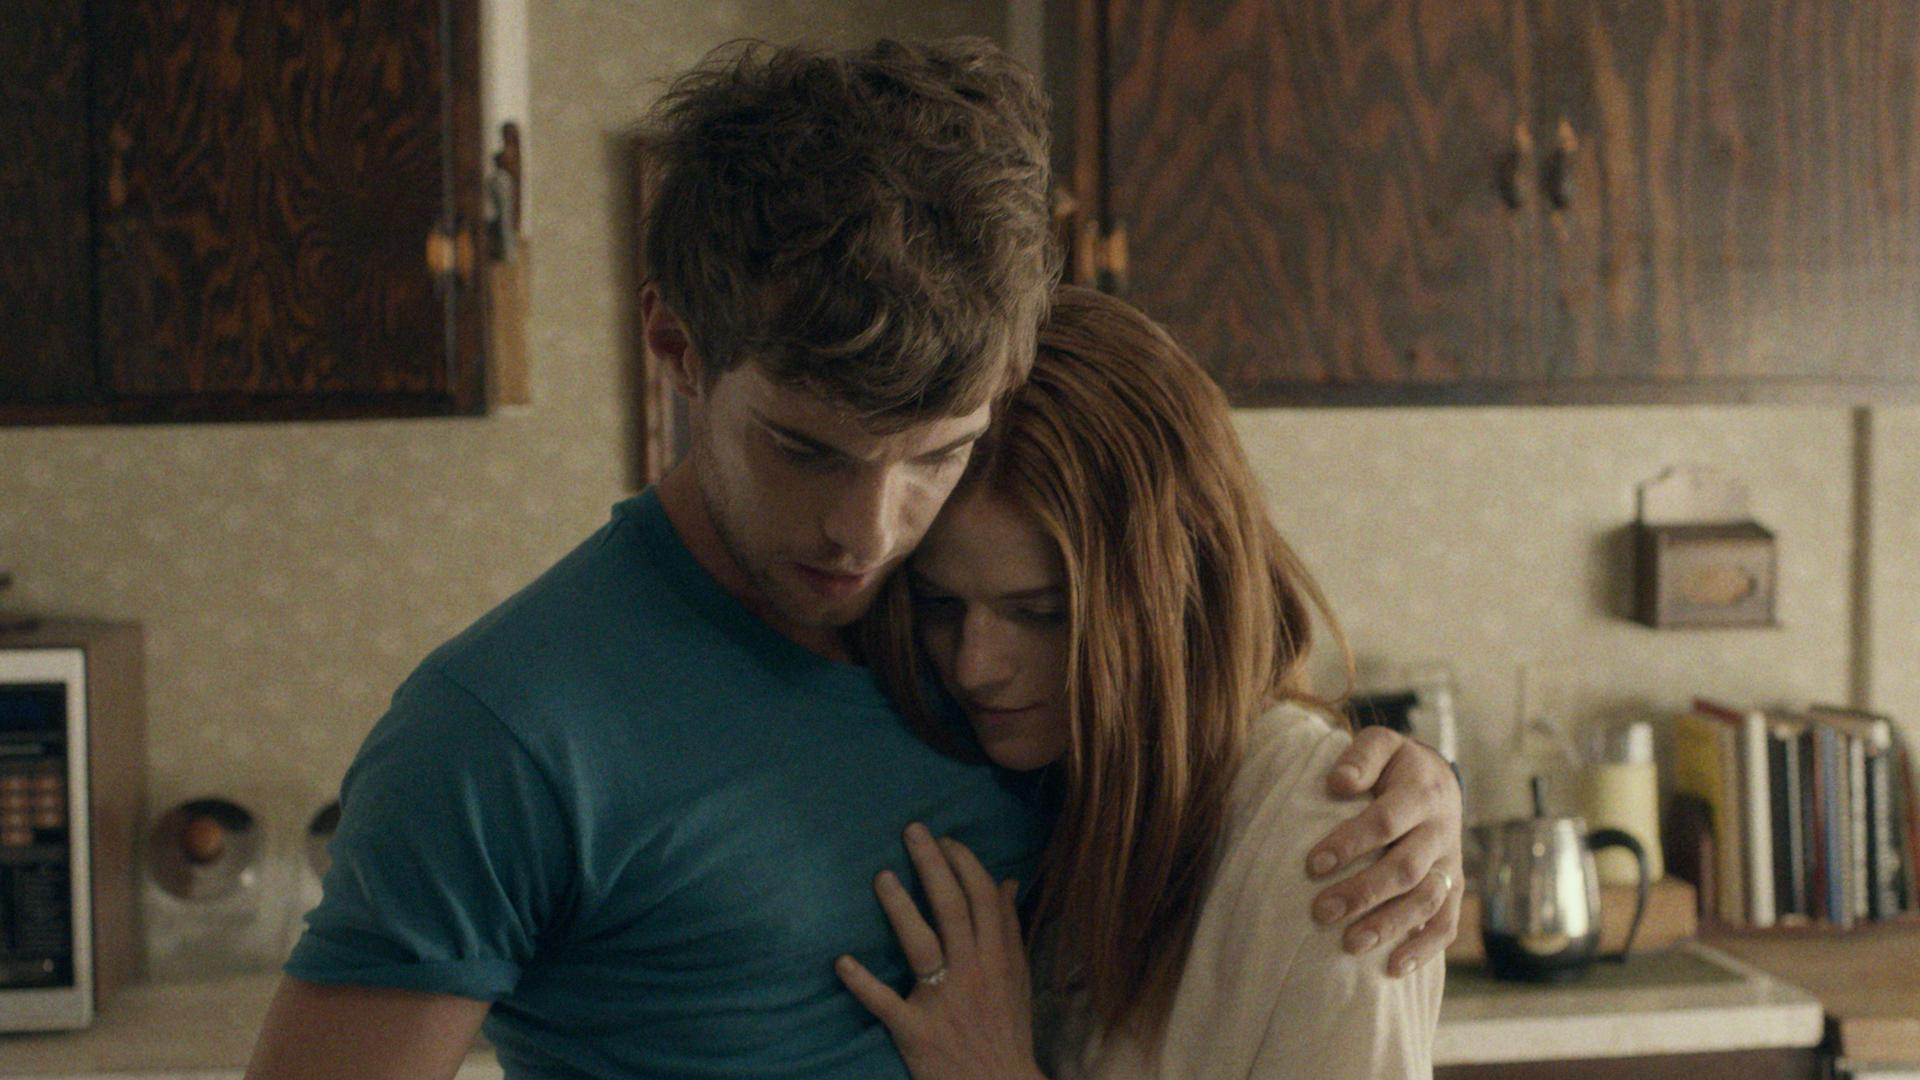 Newlyweds Harry Treadaway and Rose Leslie in a tender moment in Honeymoon (2014)